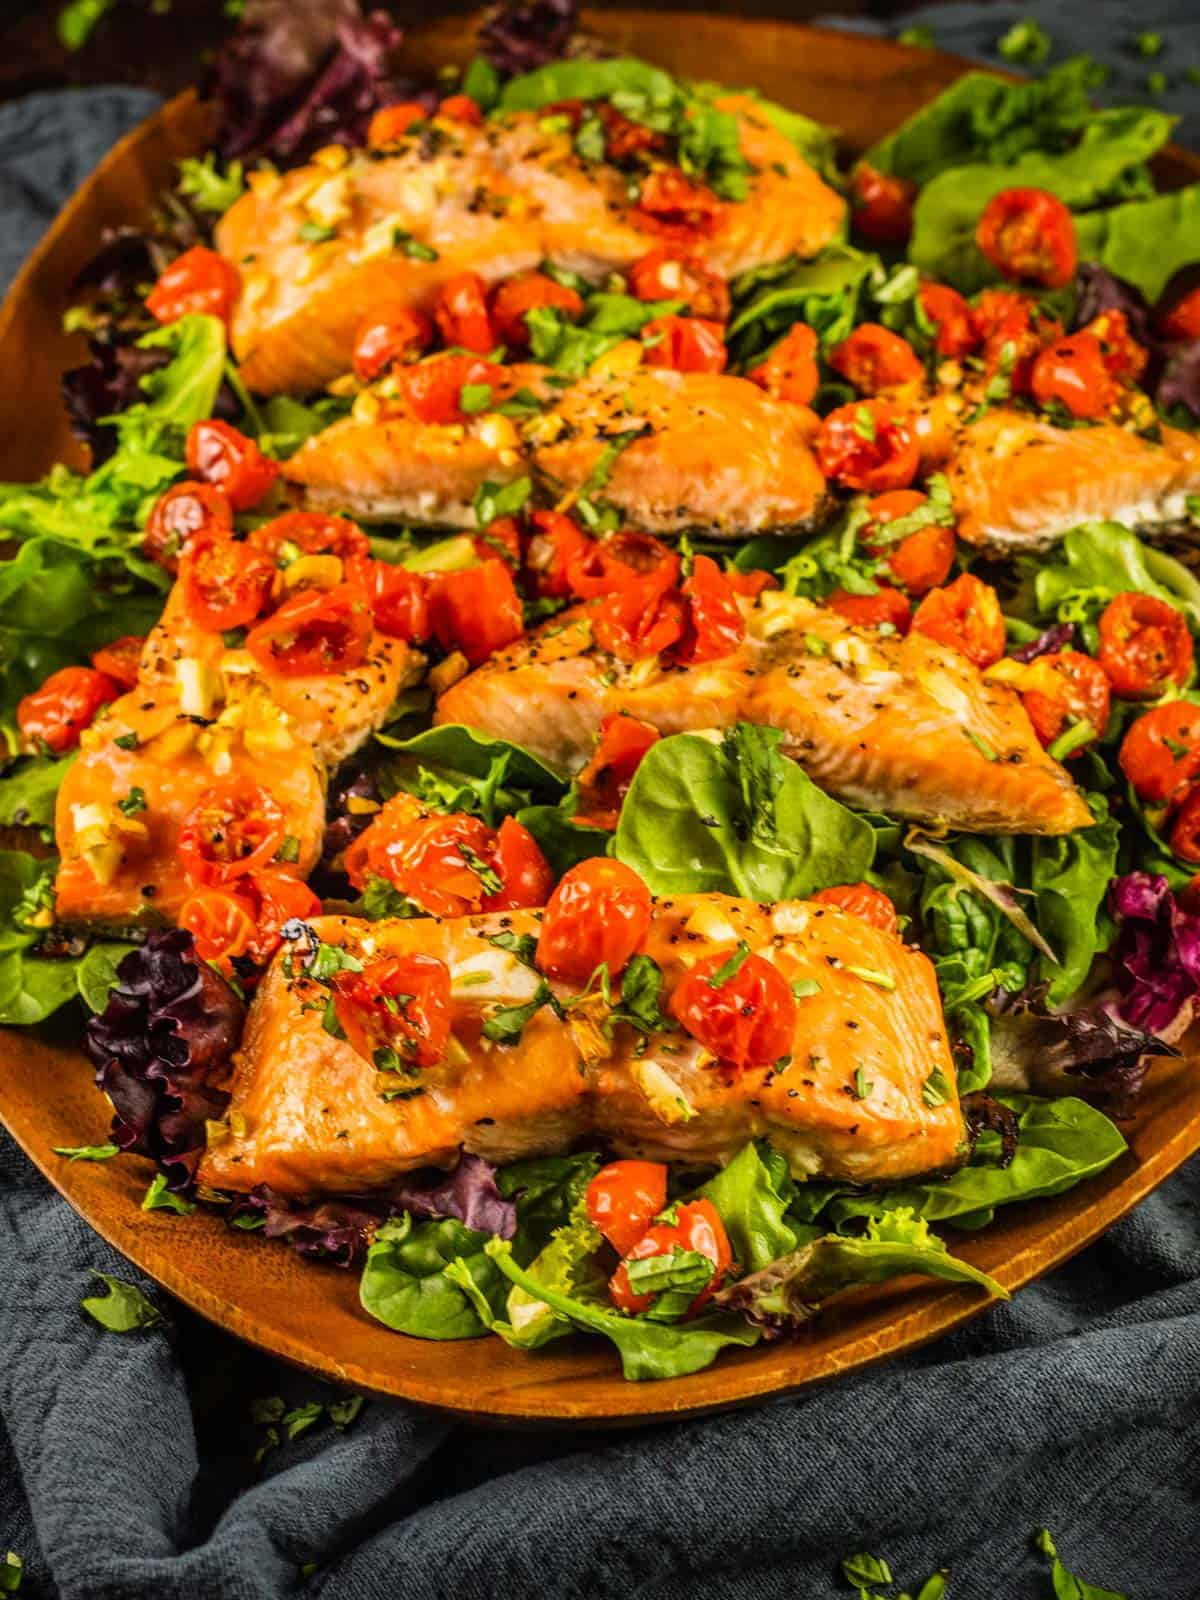 salmon filets topped with roasted tomatoes on top of salad